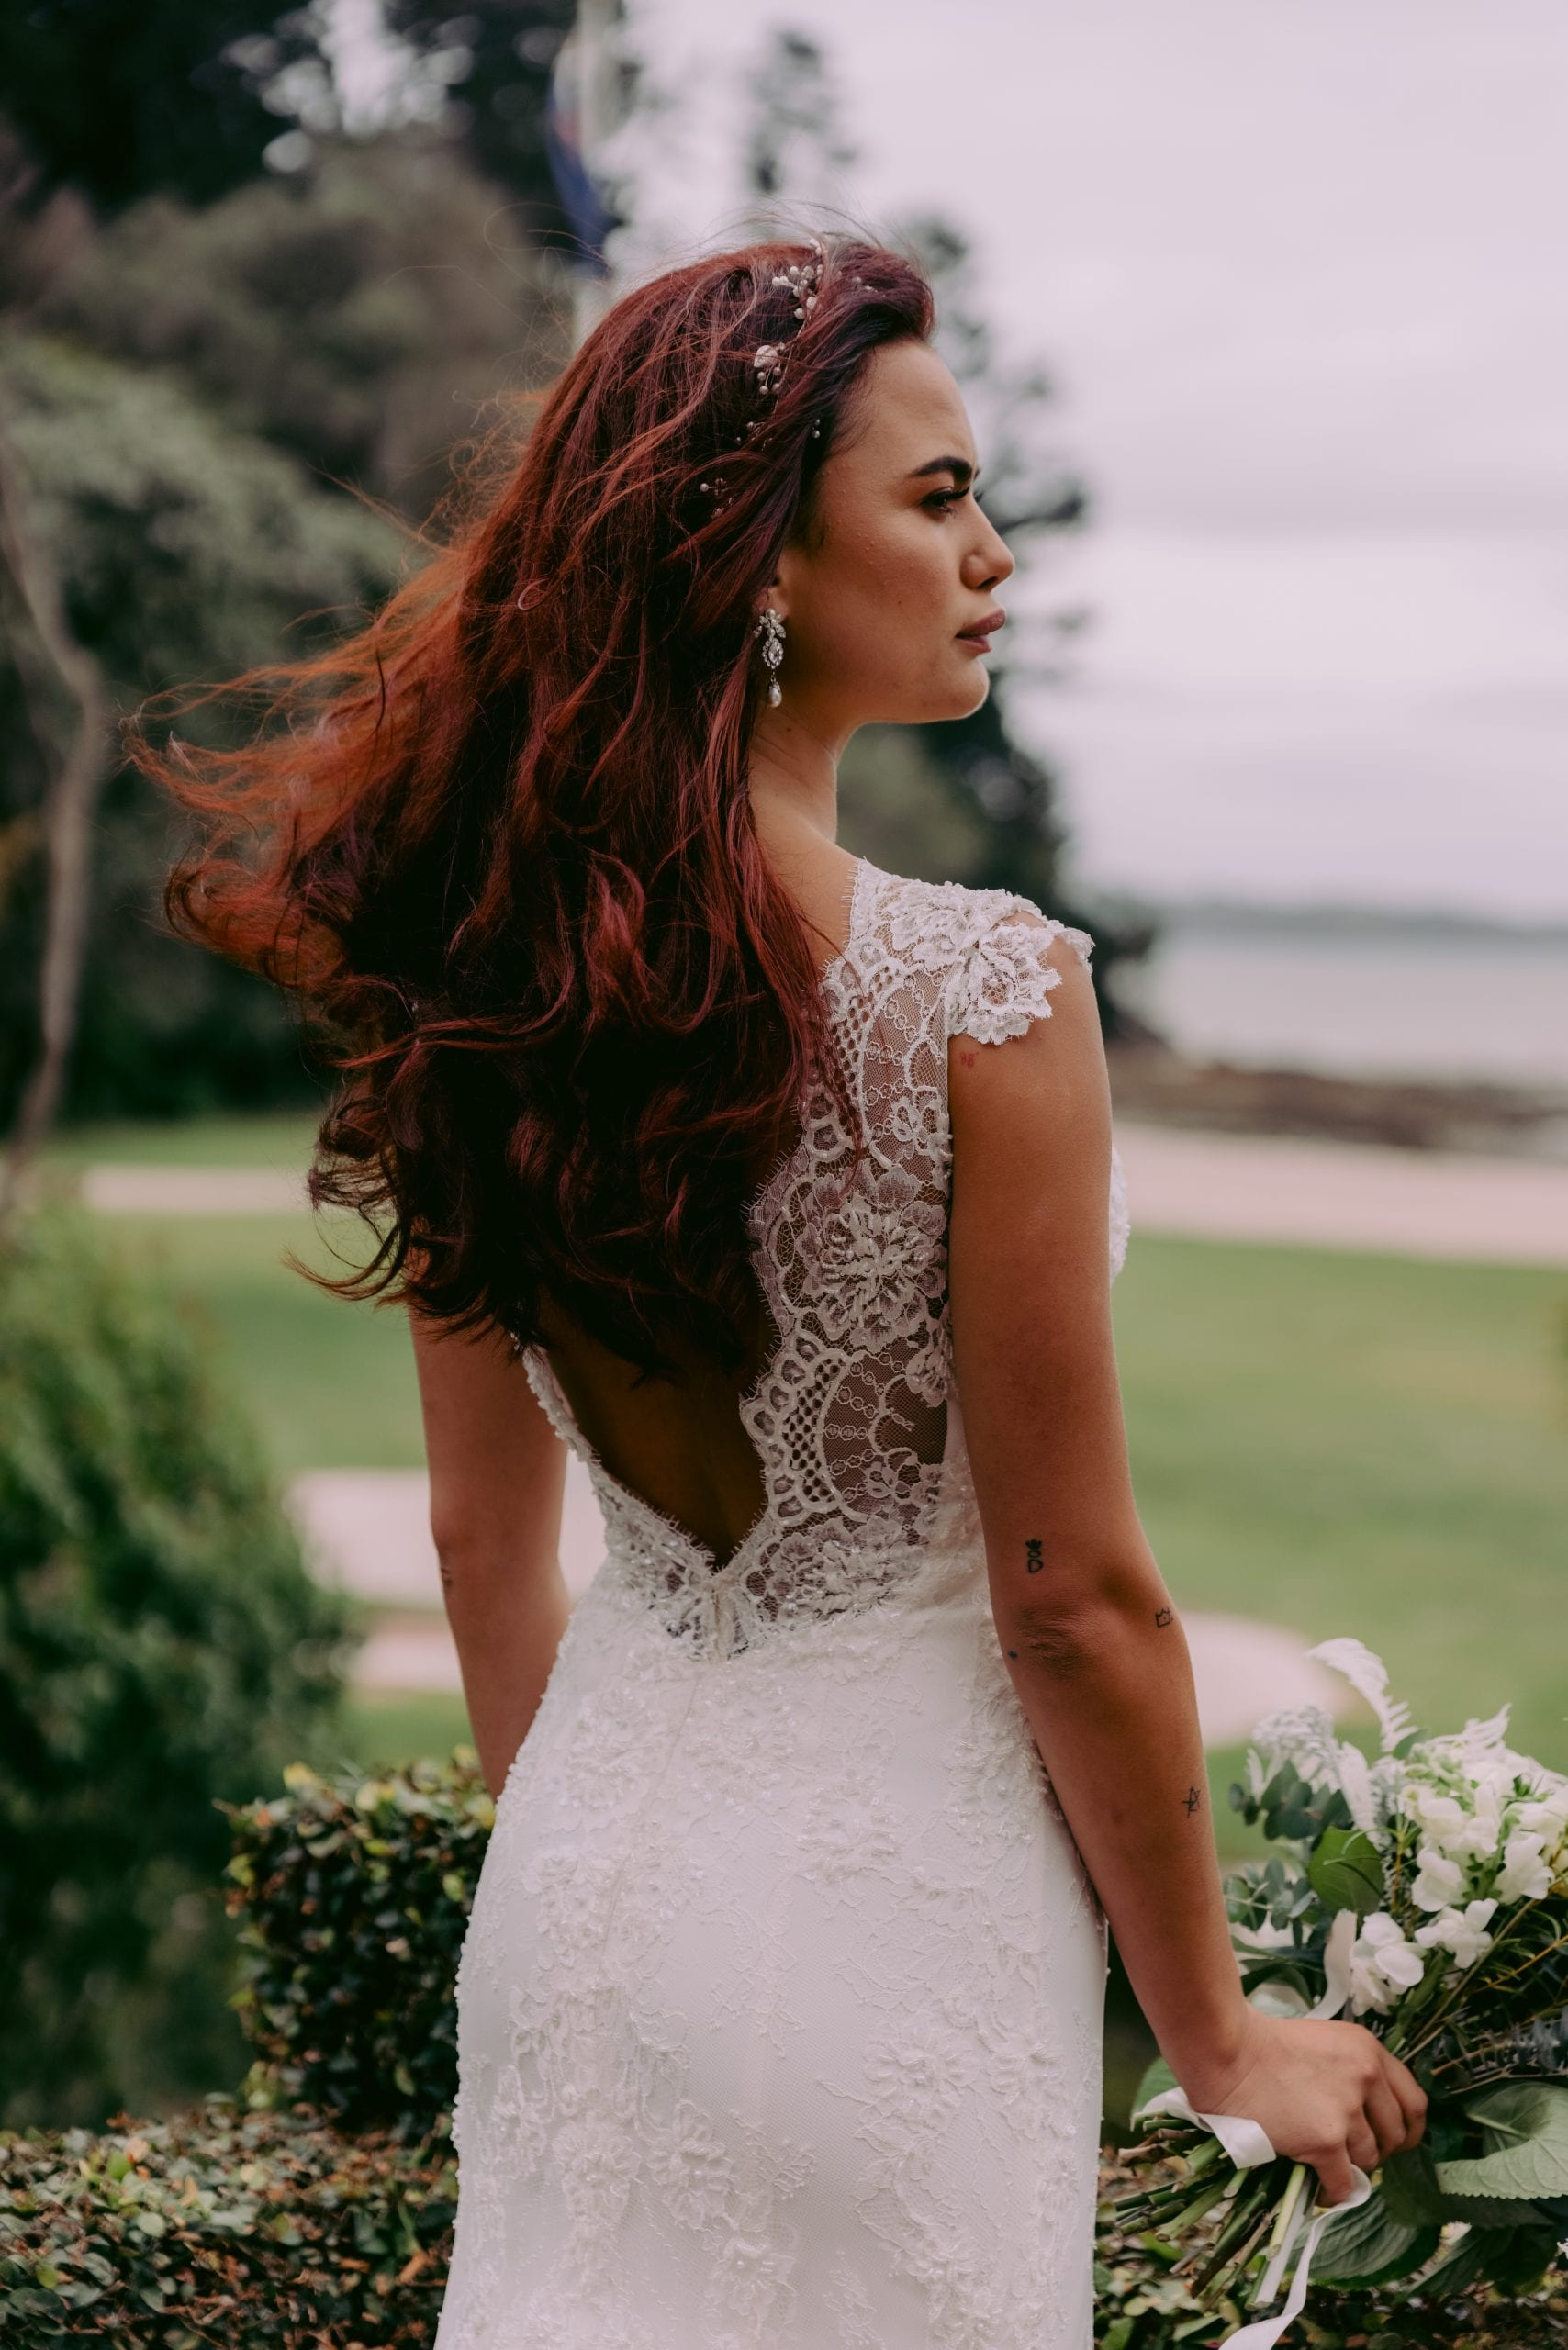 Fallyn Wedding gown from Vinka Design - This wedding dress is a timeless classic. Dramatic scallop lace and deep V-shaped neckline with beautiful low back and mini cap sleeves. This gown is cut in a fit-and-flare design with a side split. Model wearing gown , close up detail of low back.